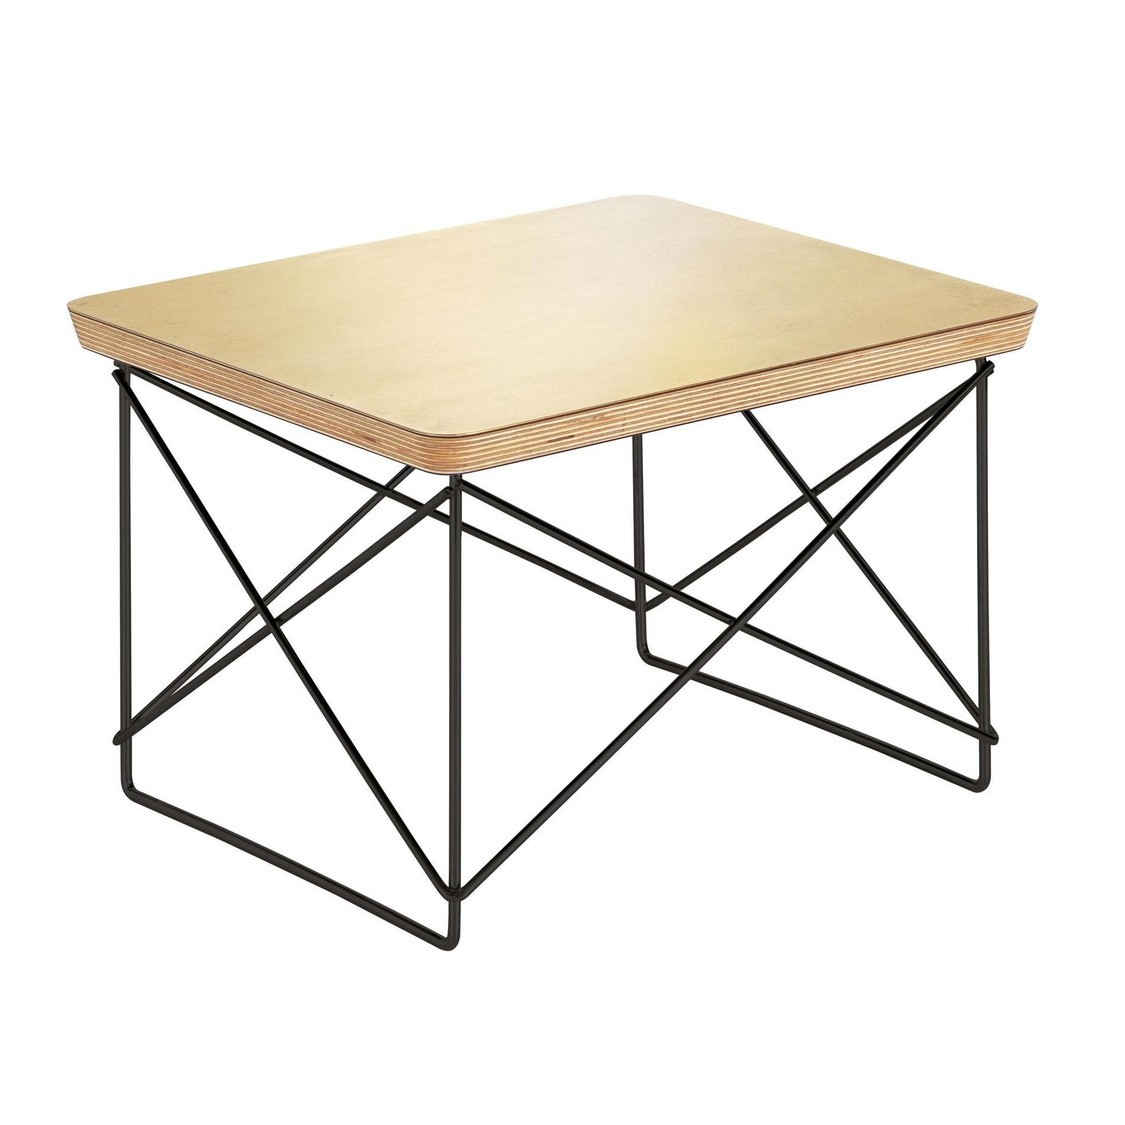 Vitra Occasional Table Basic Dark Table Dapppoint Ambientedirect